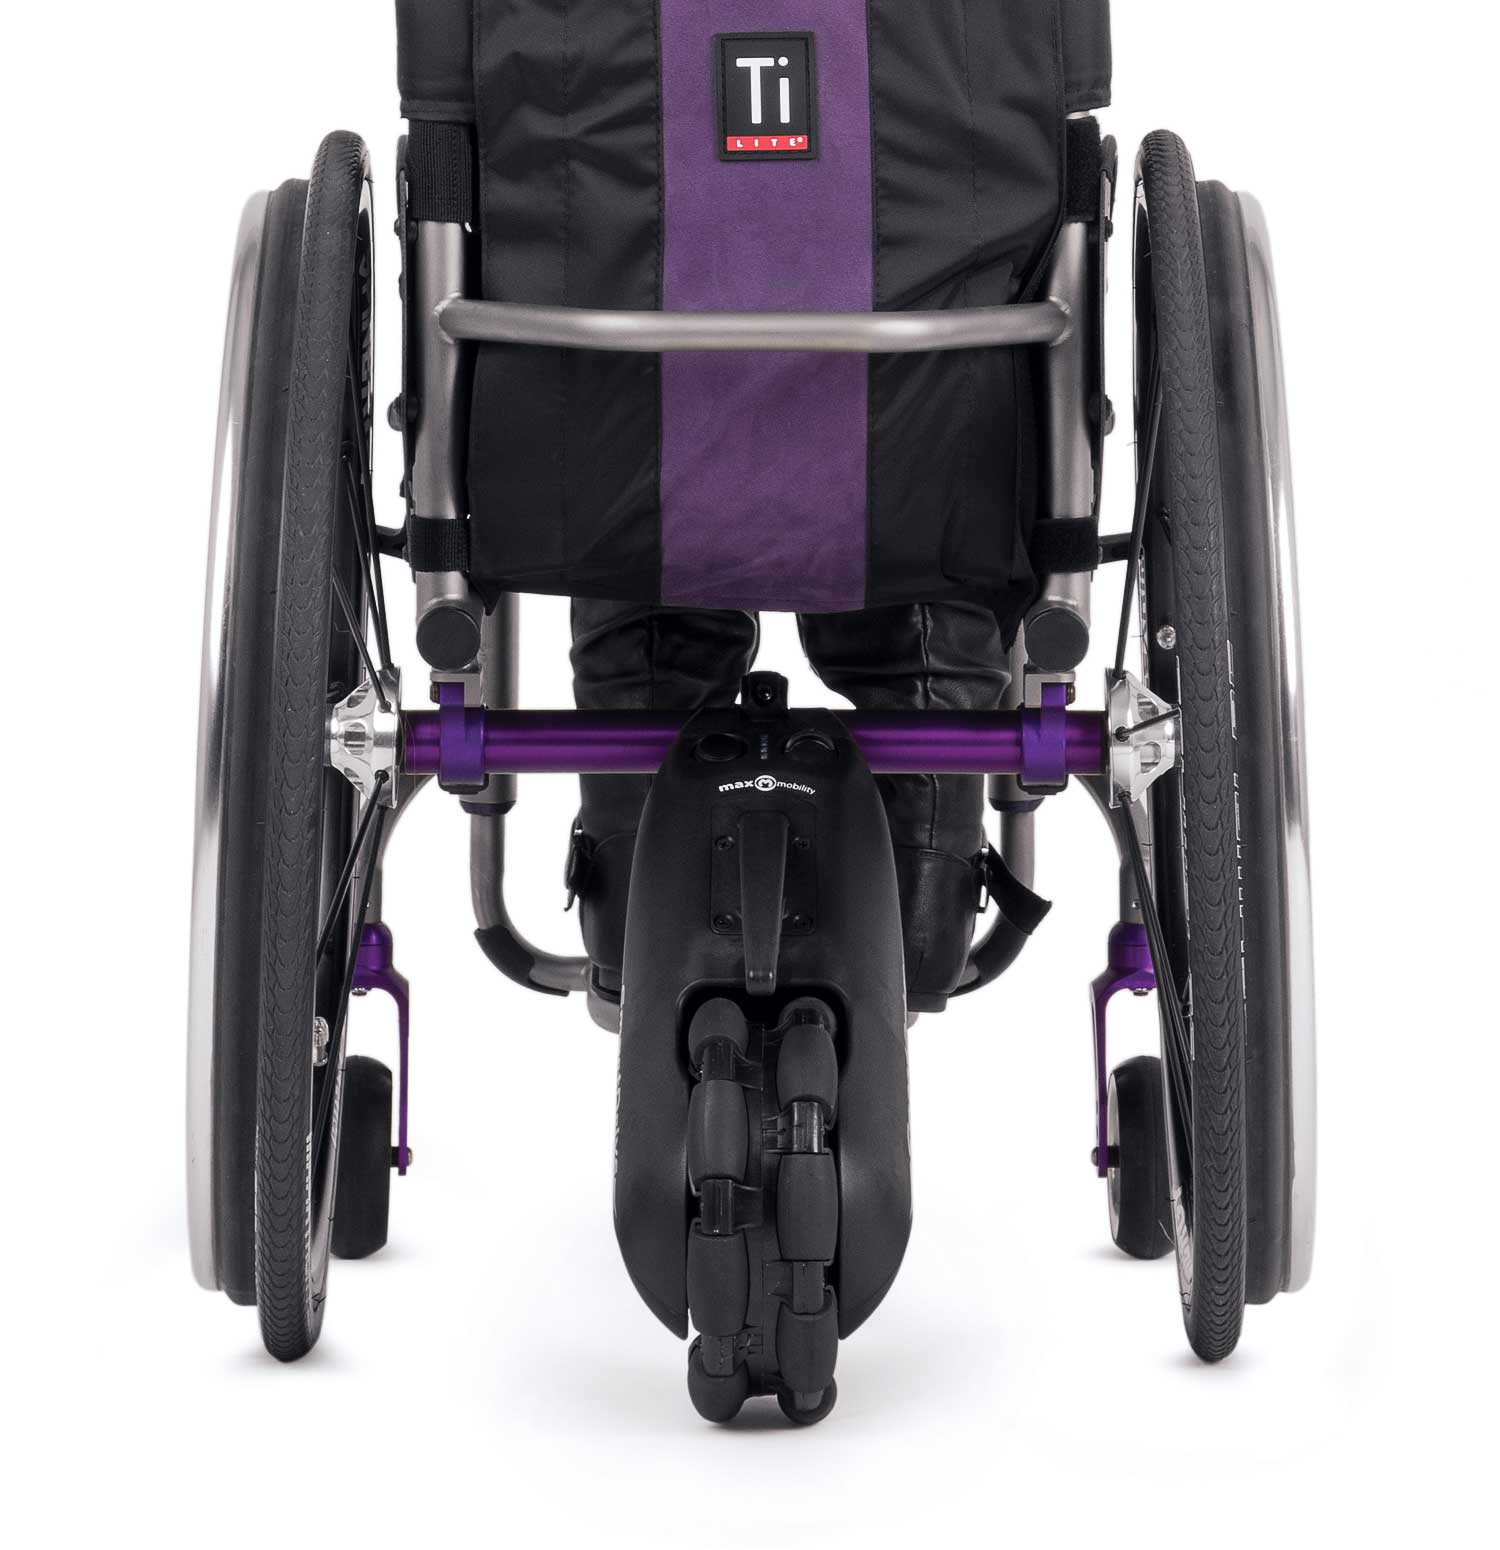 smartdrive-mx2-attached-to-back-of-wheelchair.jpg